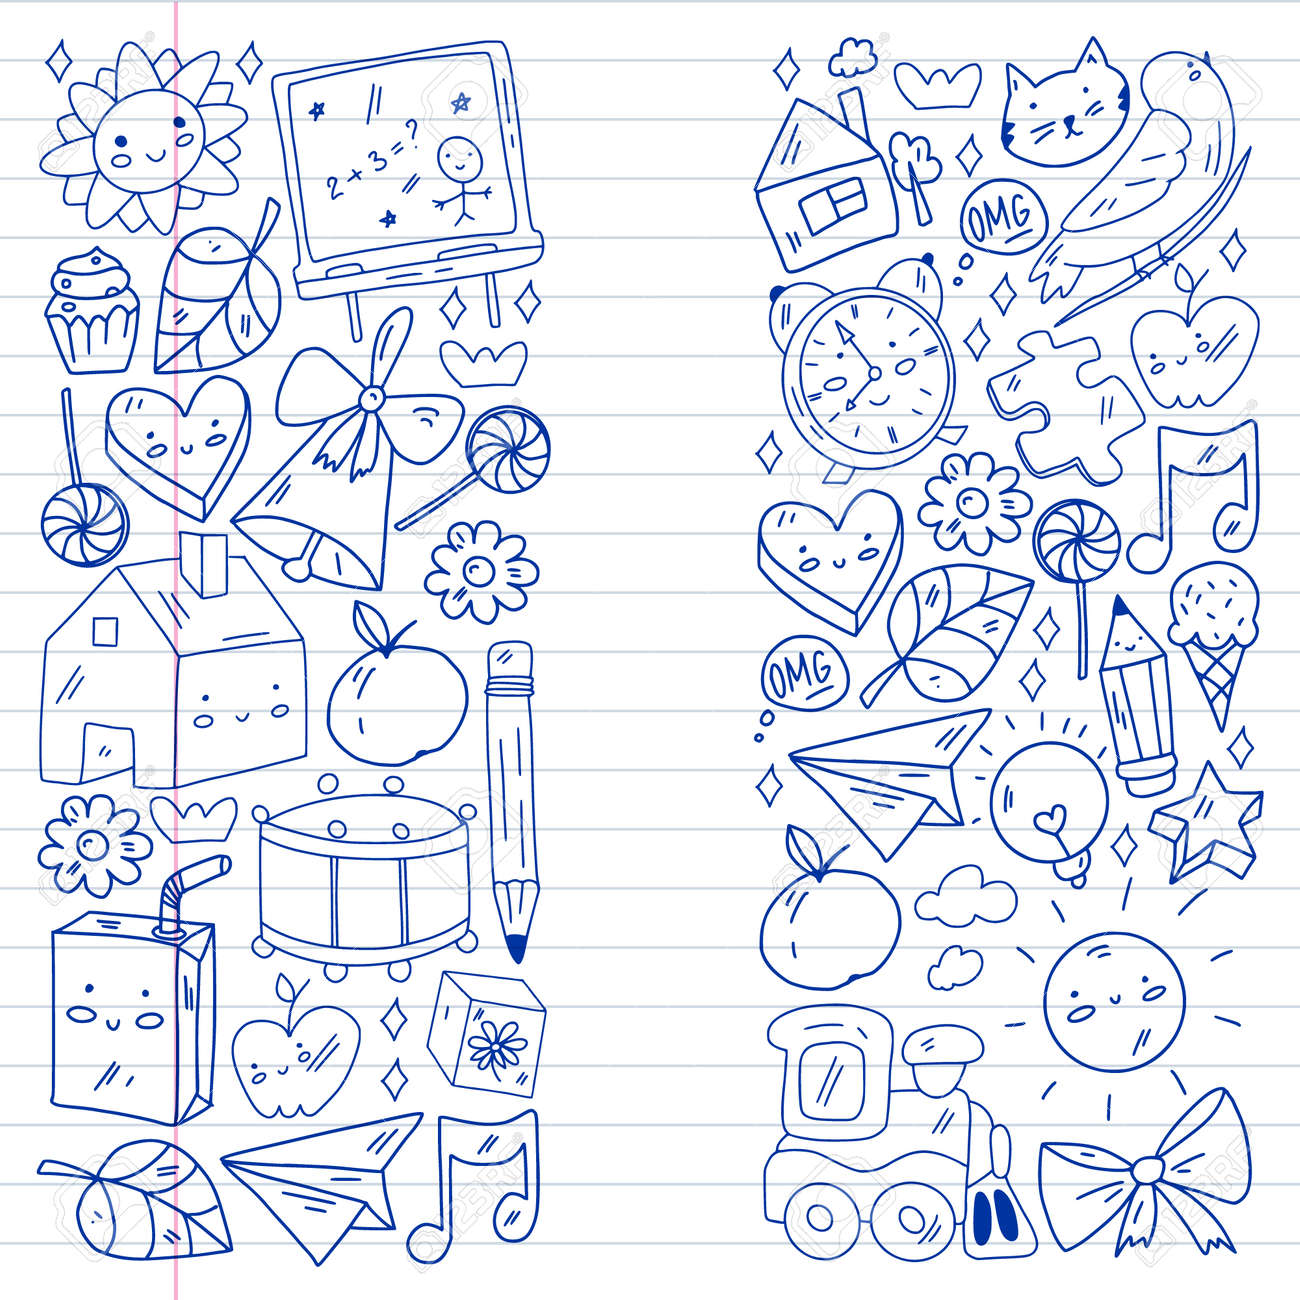 School, kindergarten icons for children. Creativity and imagination. Online education. Dancing, singing, painting. - 173336004